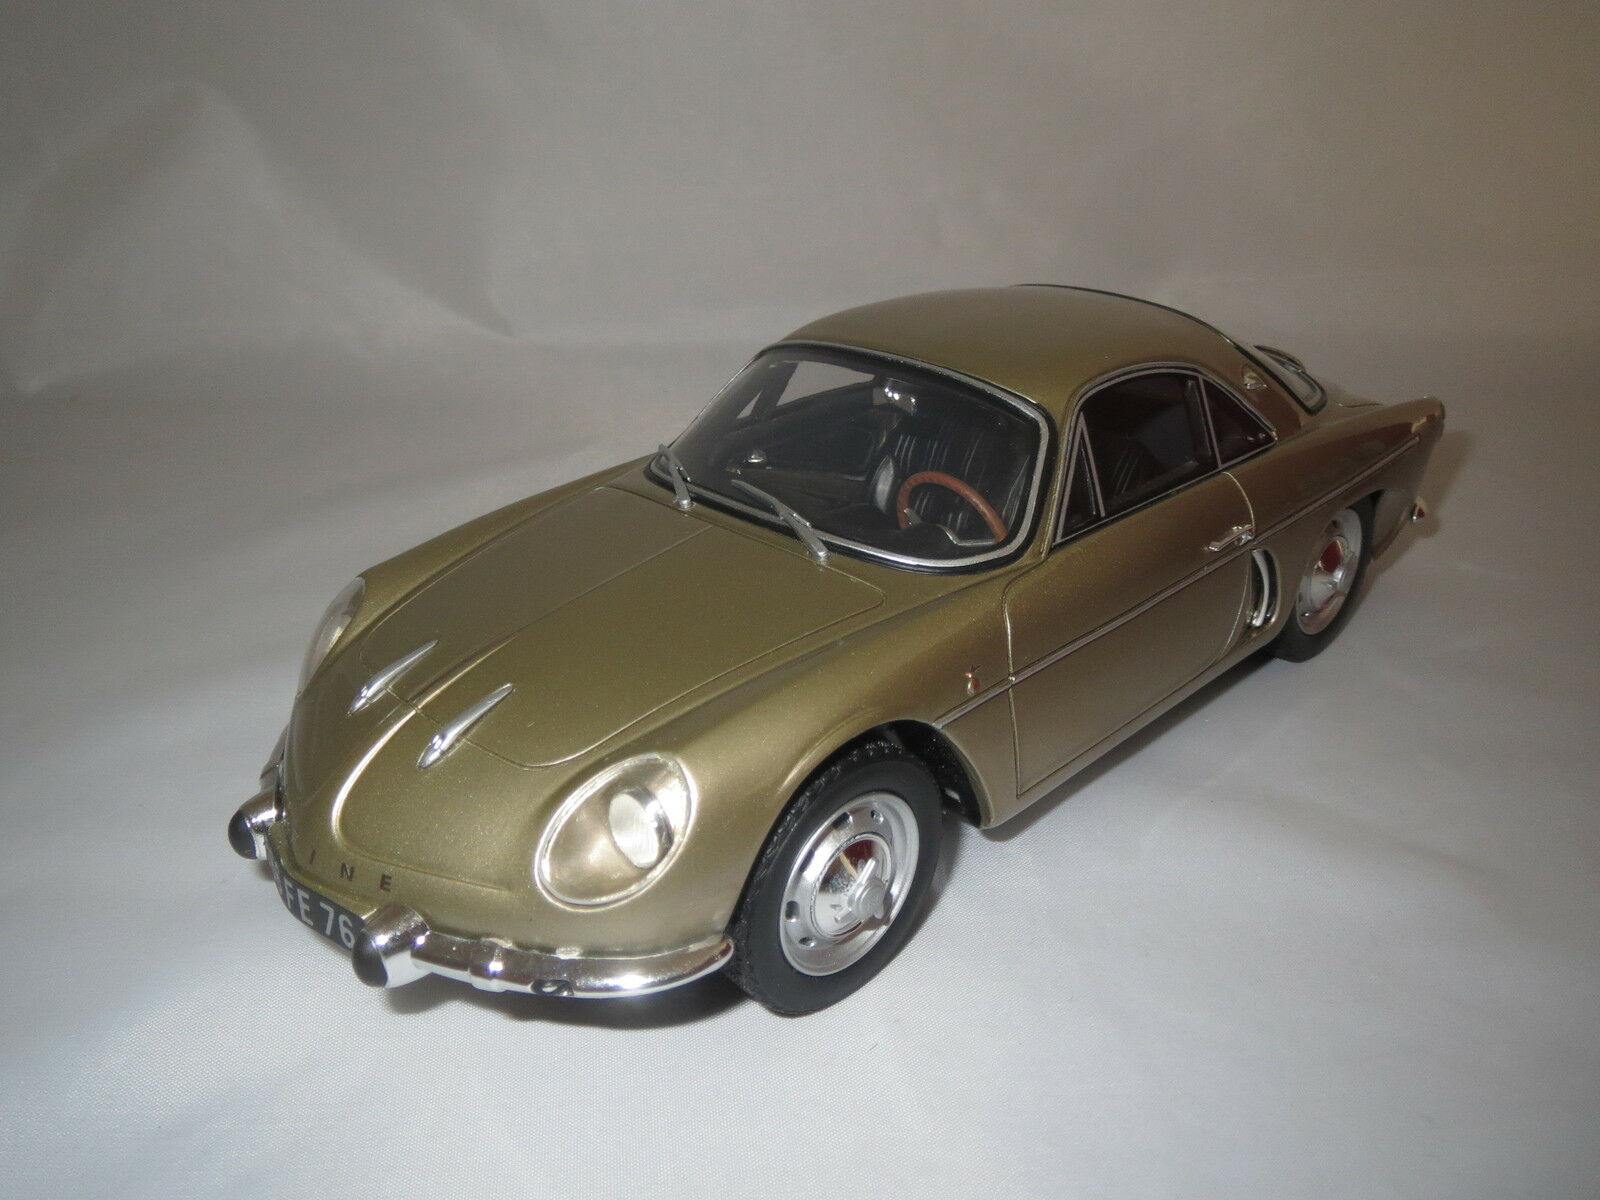 Otto models Alpine a108 Tour de France (Hell oro-met.) 1 18 sin embalaje